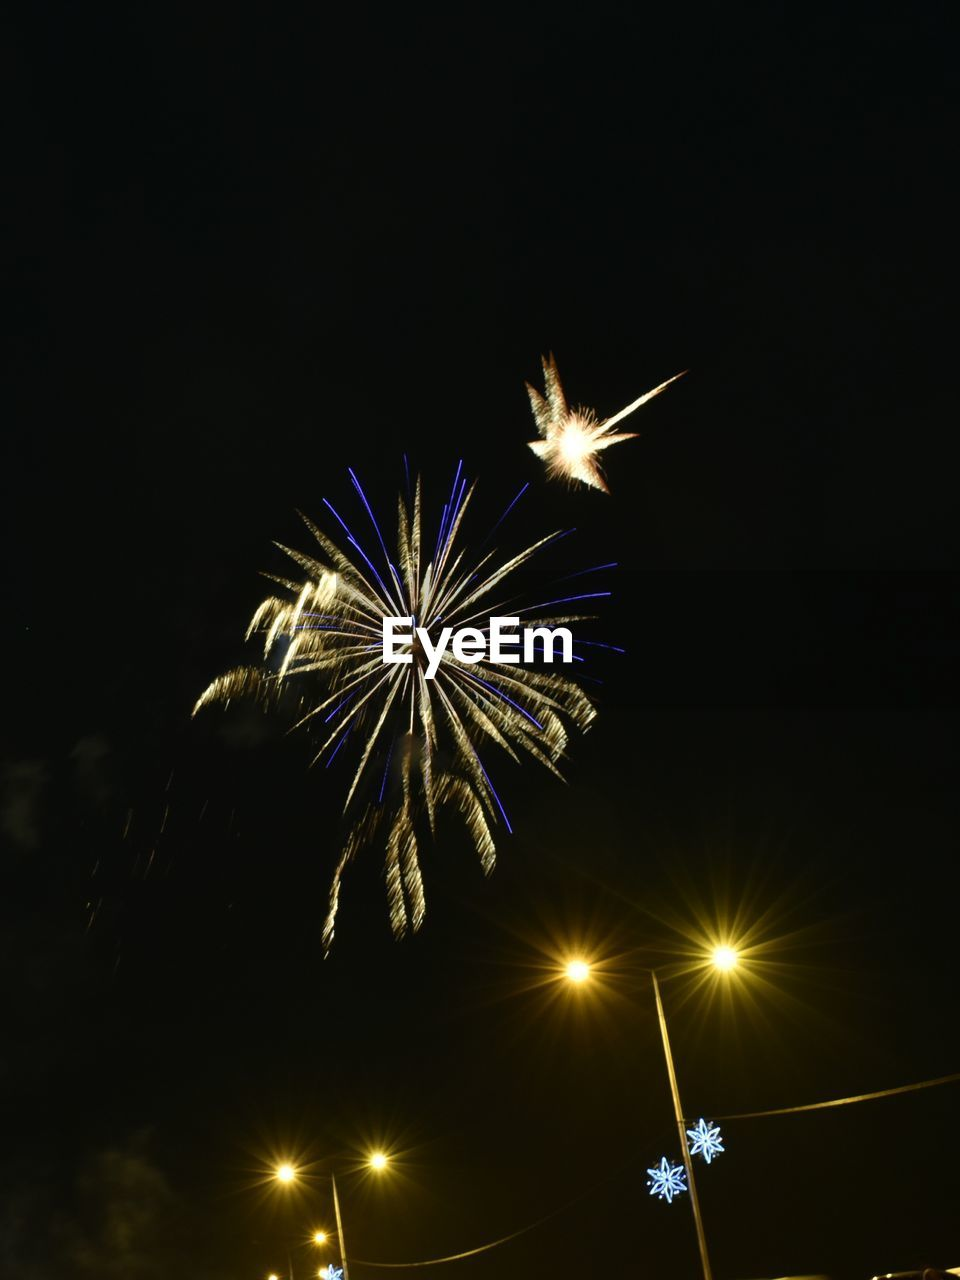 illuminated, night, glowing, firework display, lighting equipment, low angle view, firework - man made object, long exposure, celebration, blurred motion, arts culture and entertainment, motion, no people, firework, outdoors, sparkler, sky